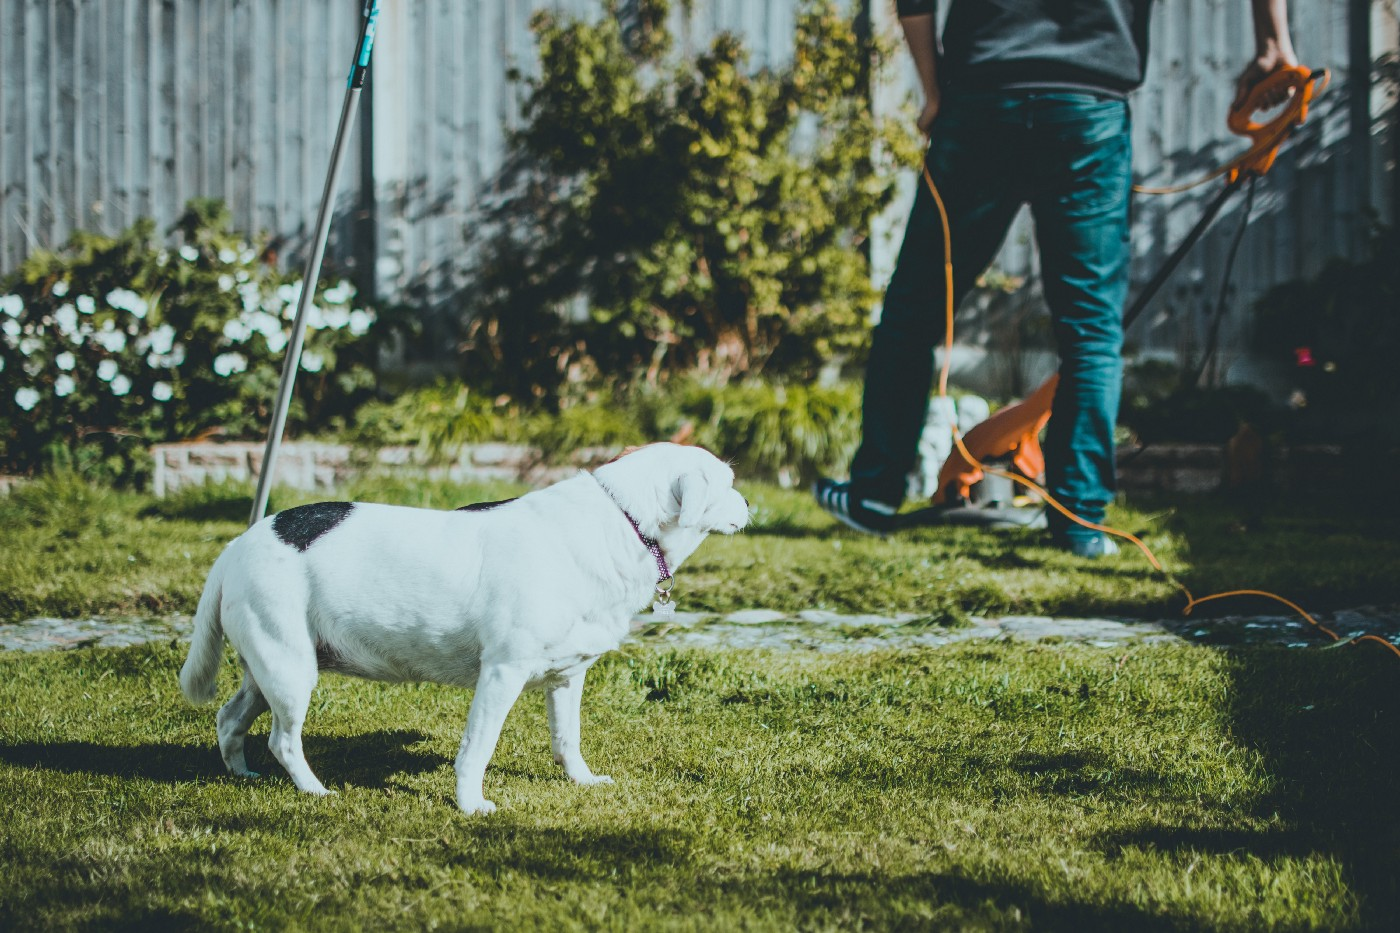 A dog watched a guy trim his suburban lawn.